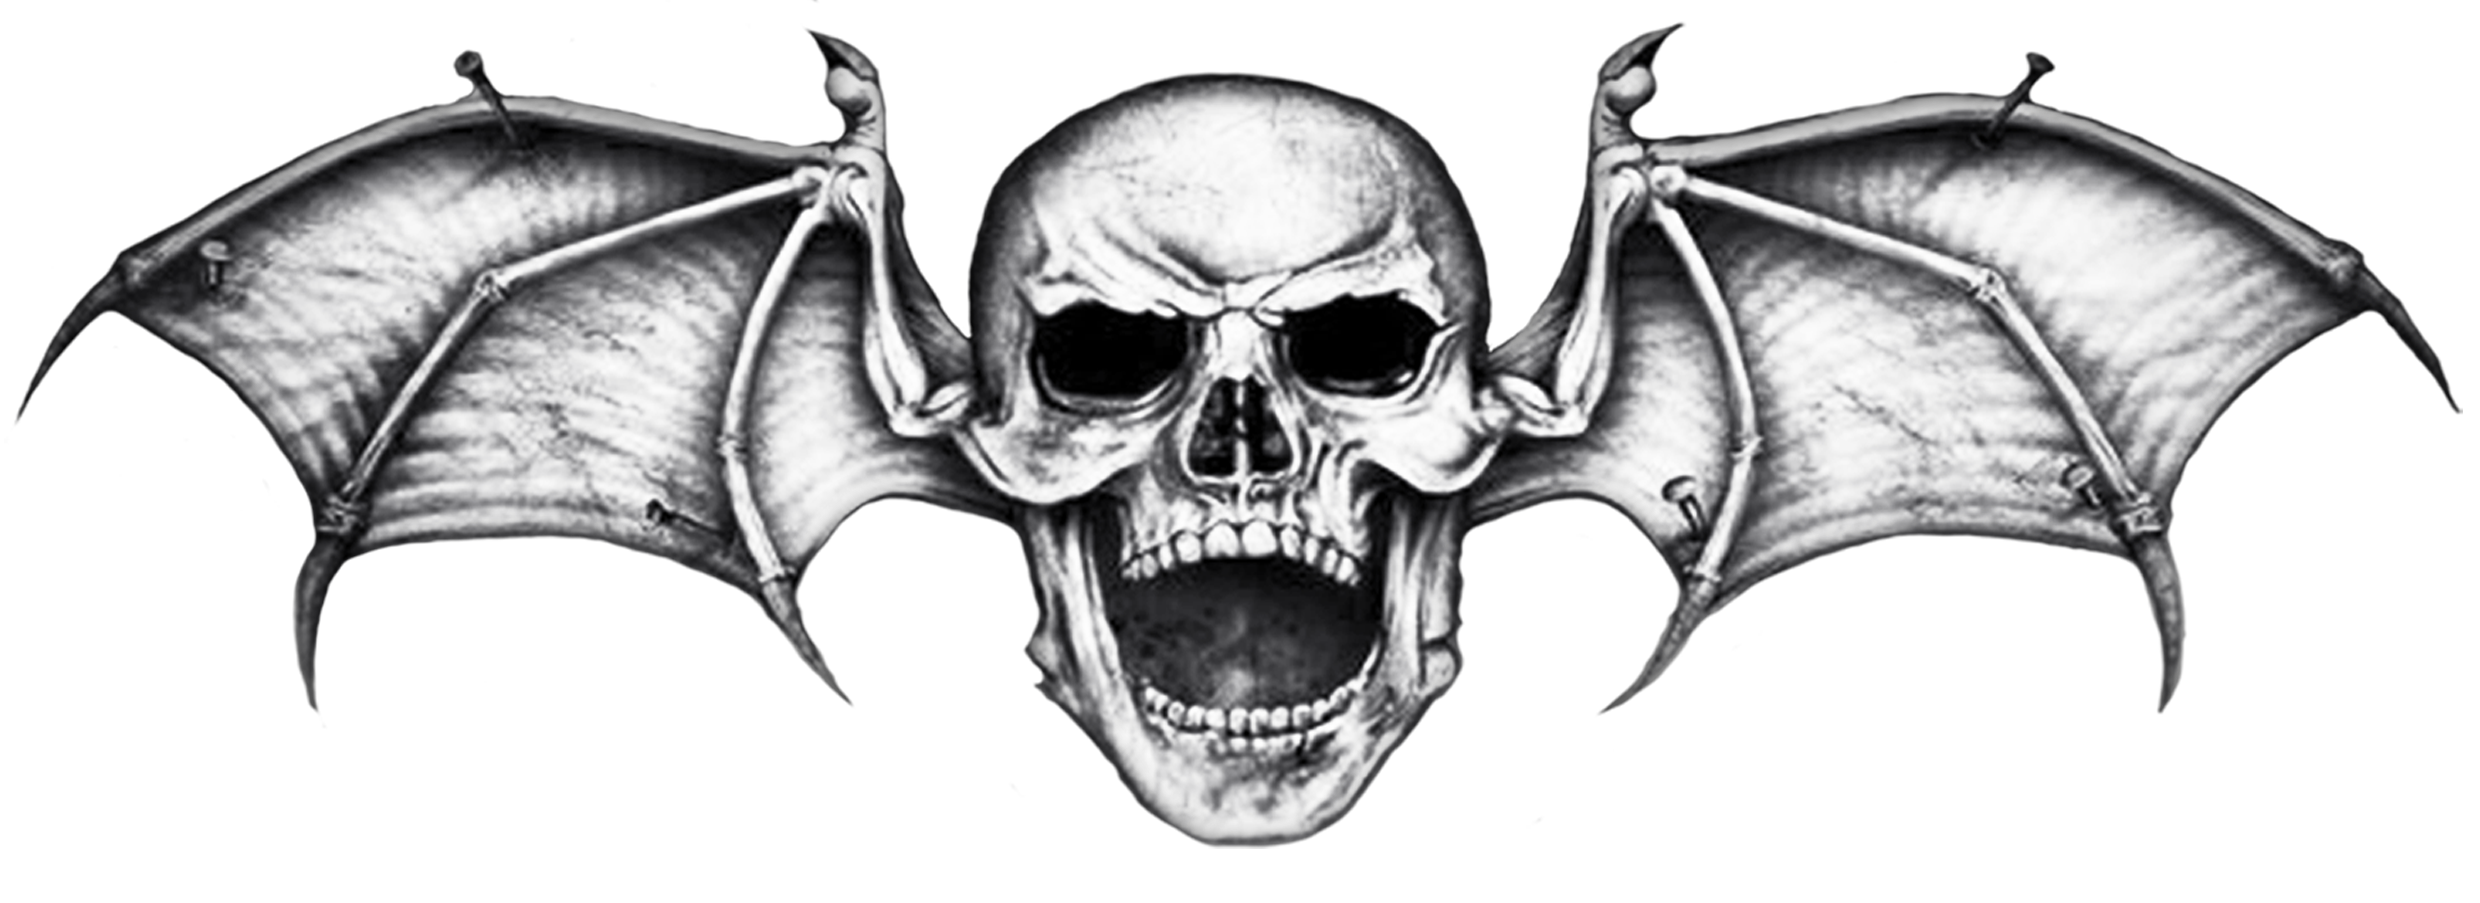 Avenged Sevenfold PNG - 1033